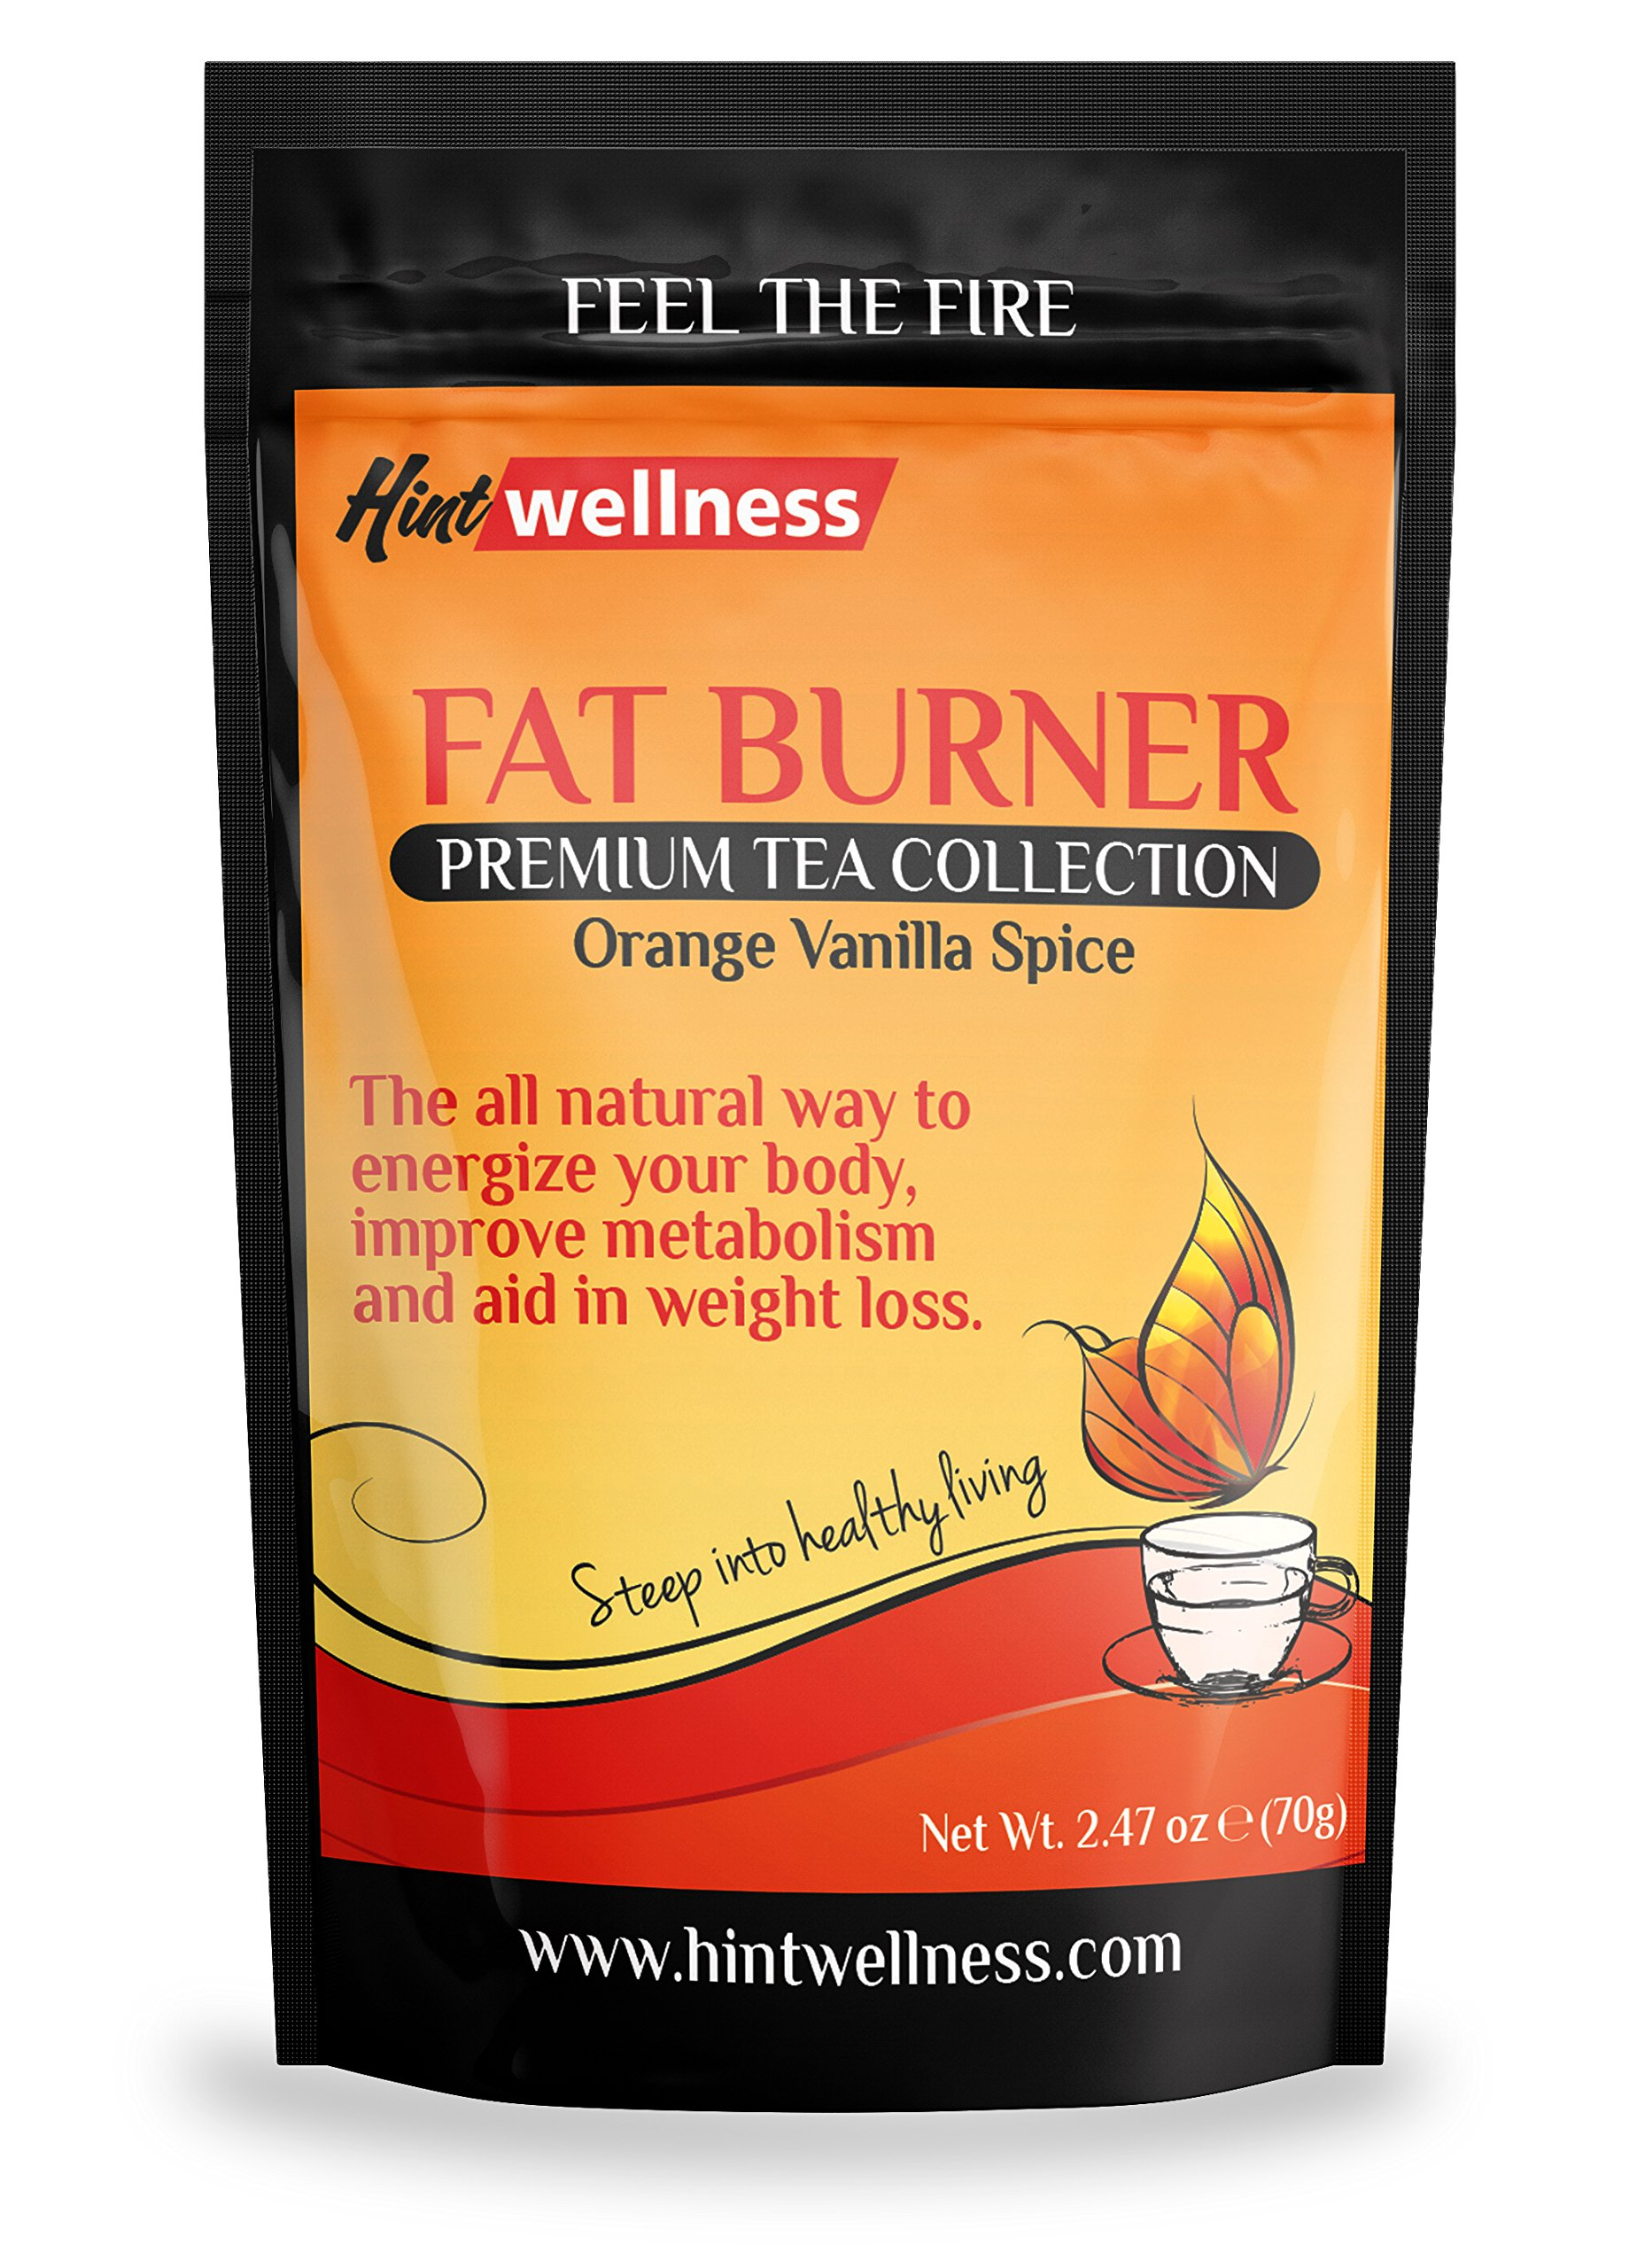 Energy Tea Blend - Used As A Natural Fat Burner By Increasing Metabolism